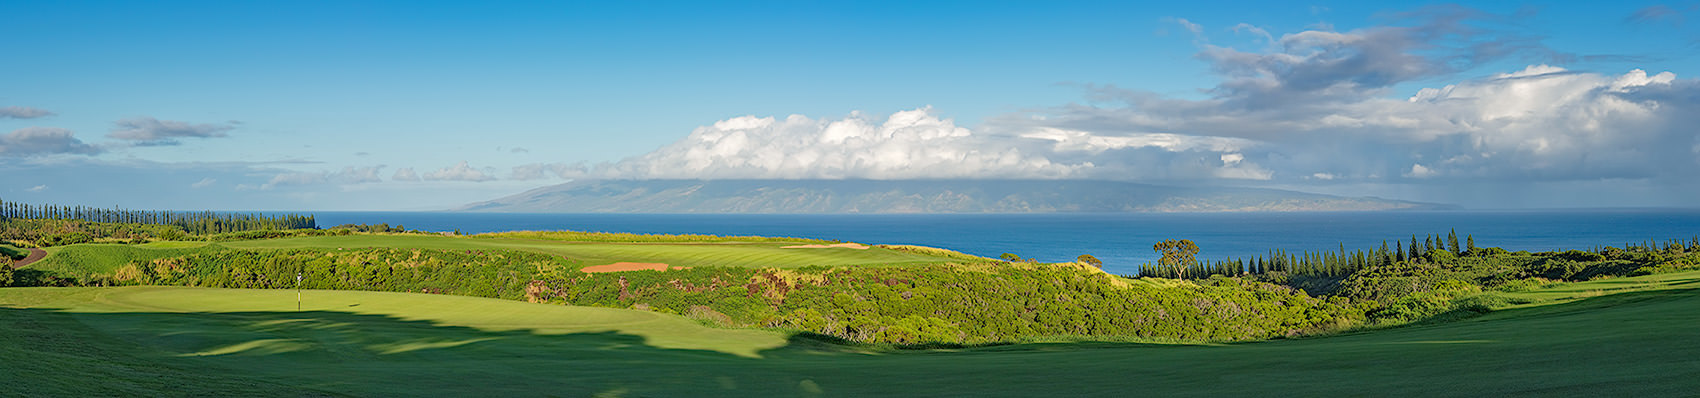 <div class='title'>           5TH HOLE, BAY COURSE AT KAPALUA         </div>                 <div class='description'>           Kapalua's Plantation Course, the view across the 5th greet to Molokai         </div>